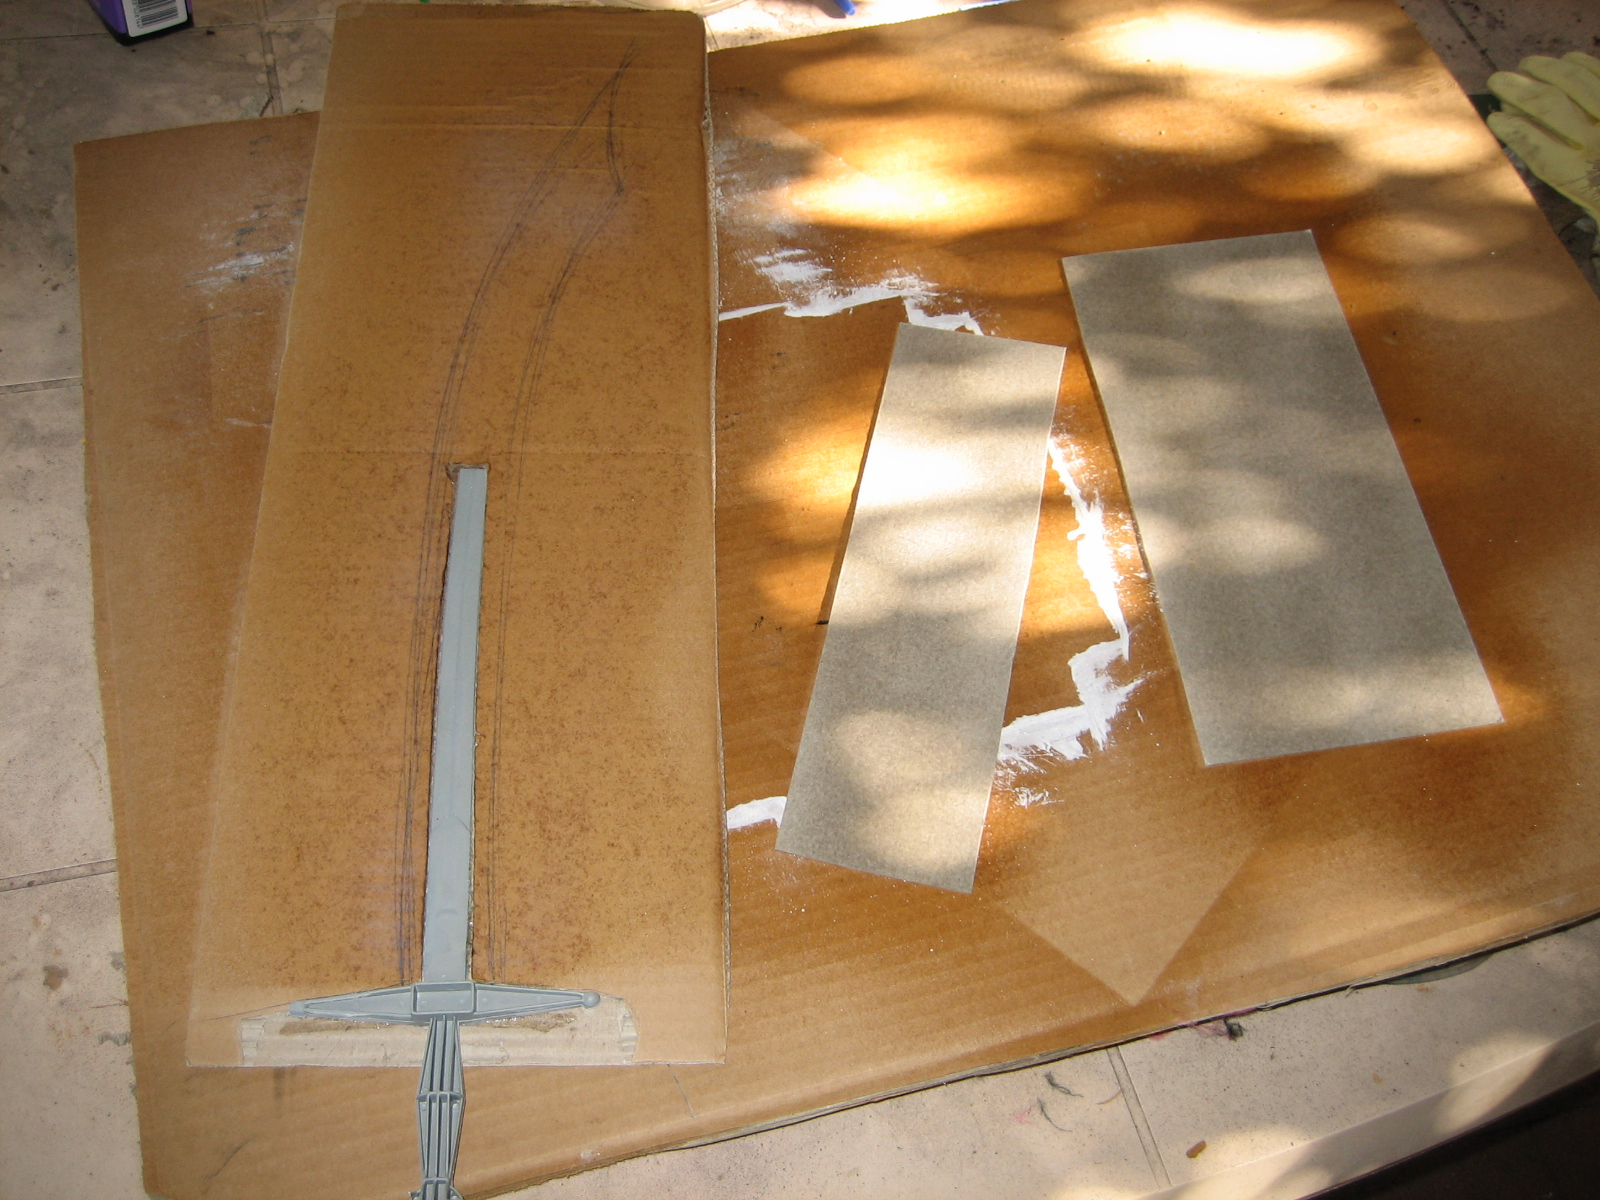 Picture of Swords: Making Pirate Blades.